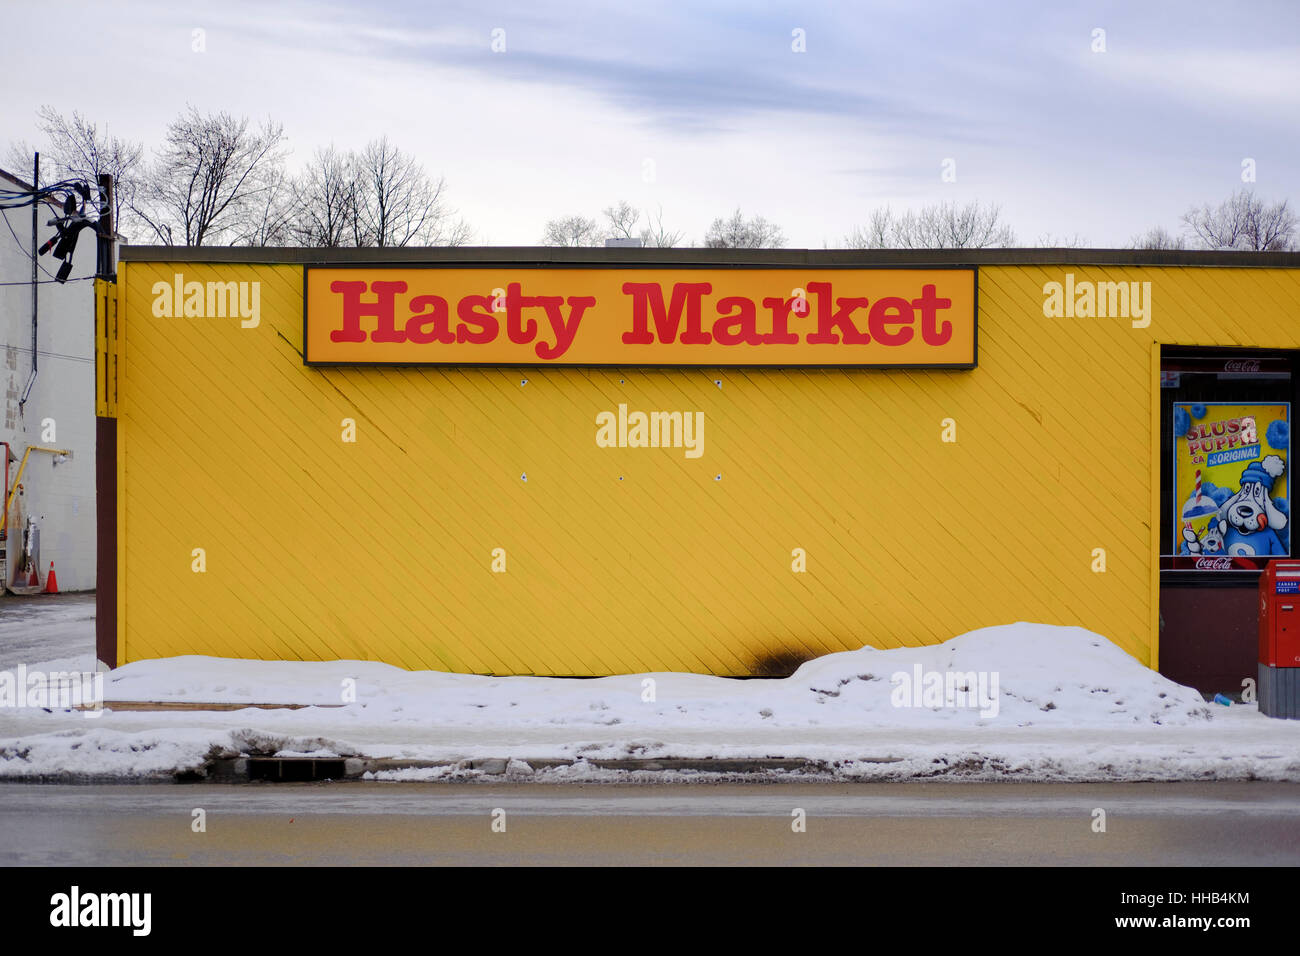 Exterior view of Hasty Market convenience store in London, Ontario, ON, Canada. - Stock Image